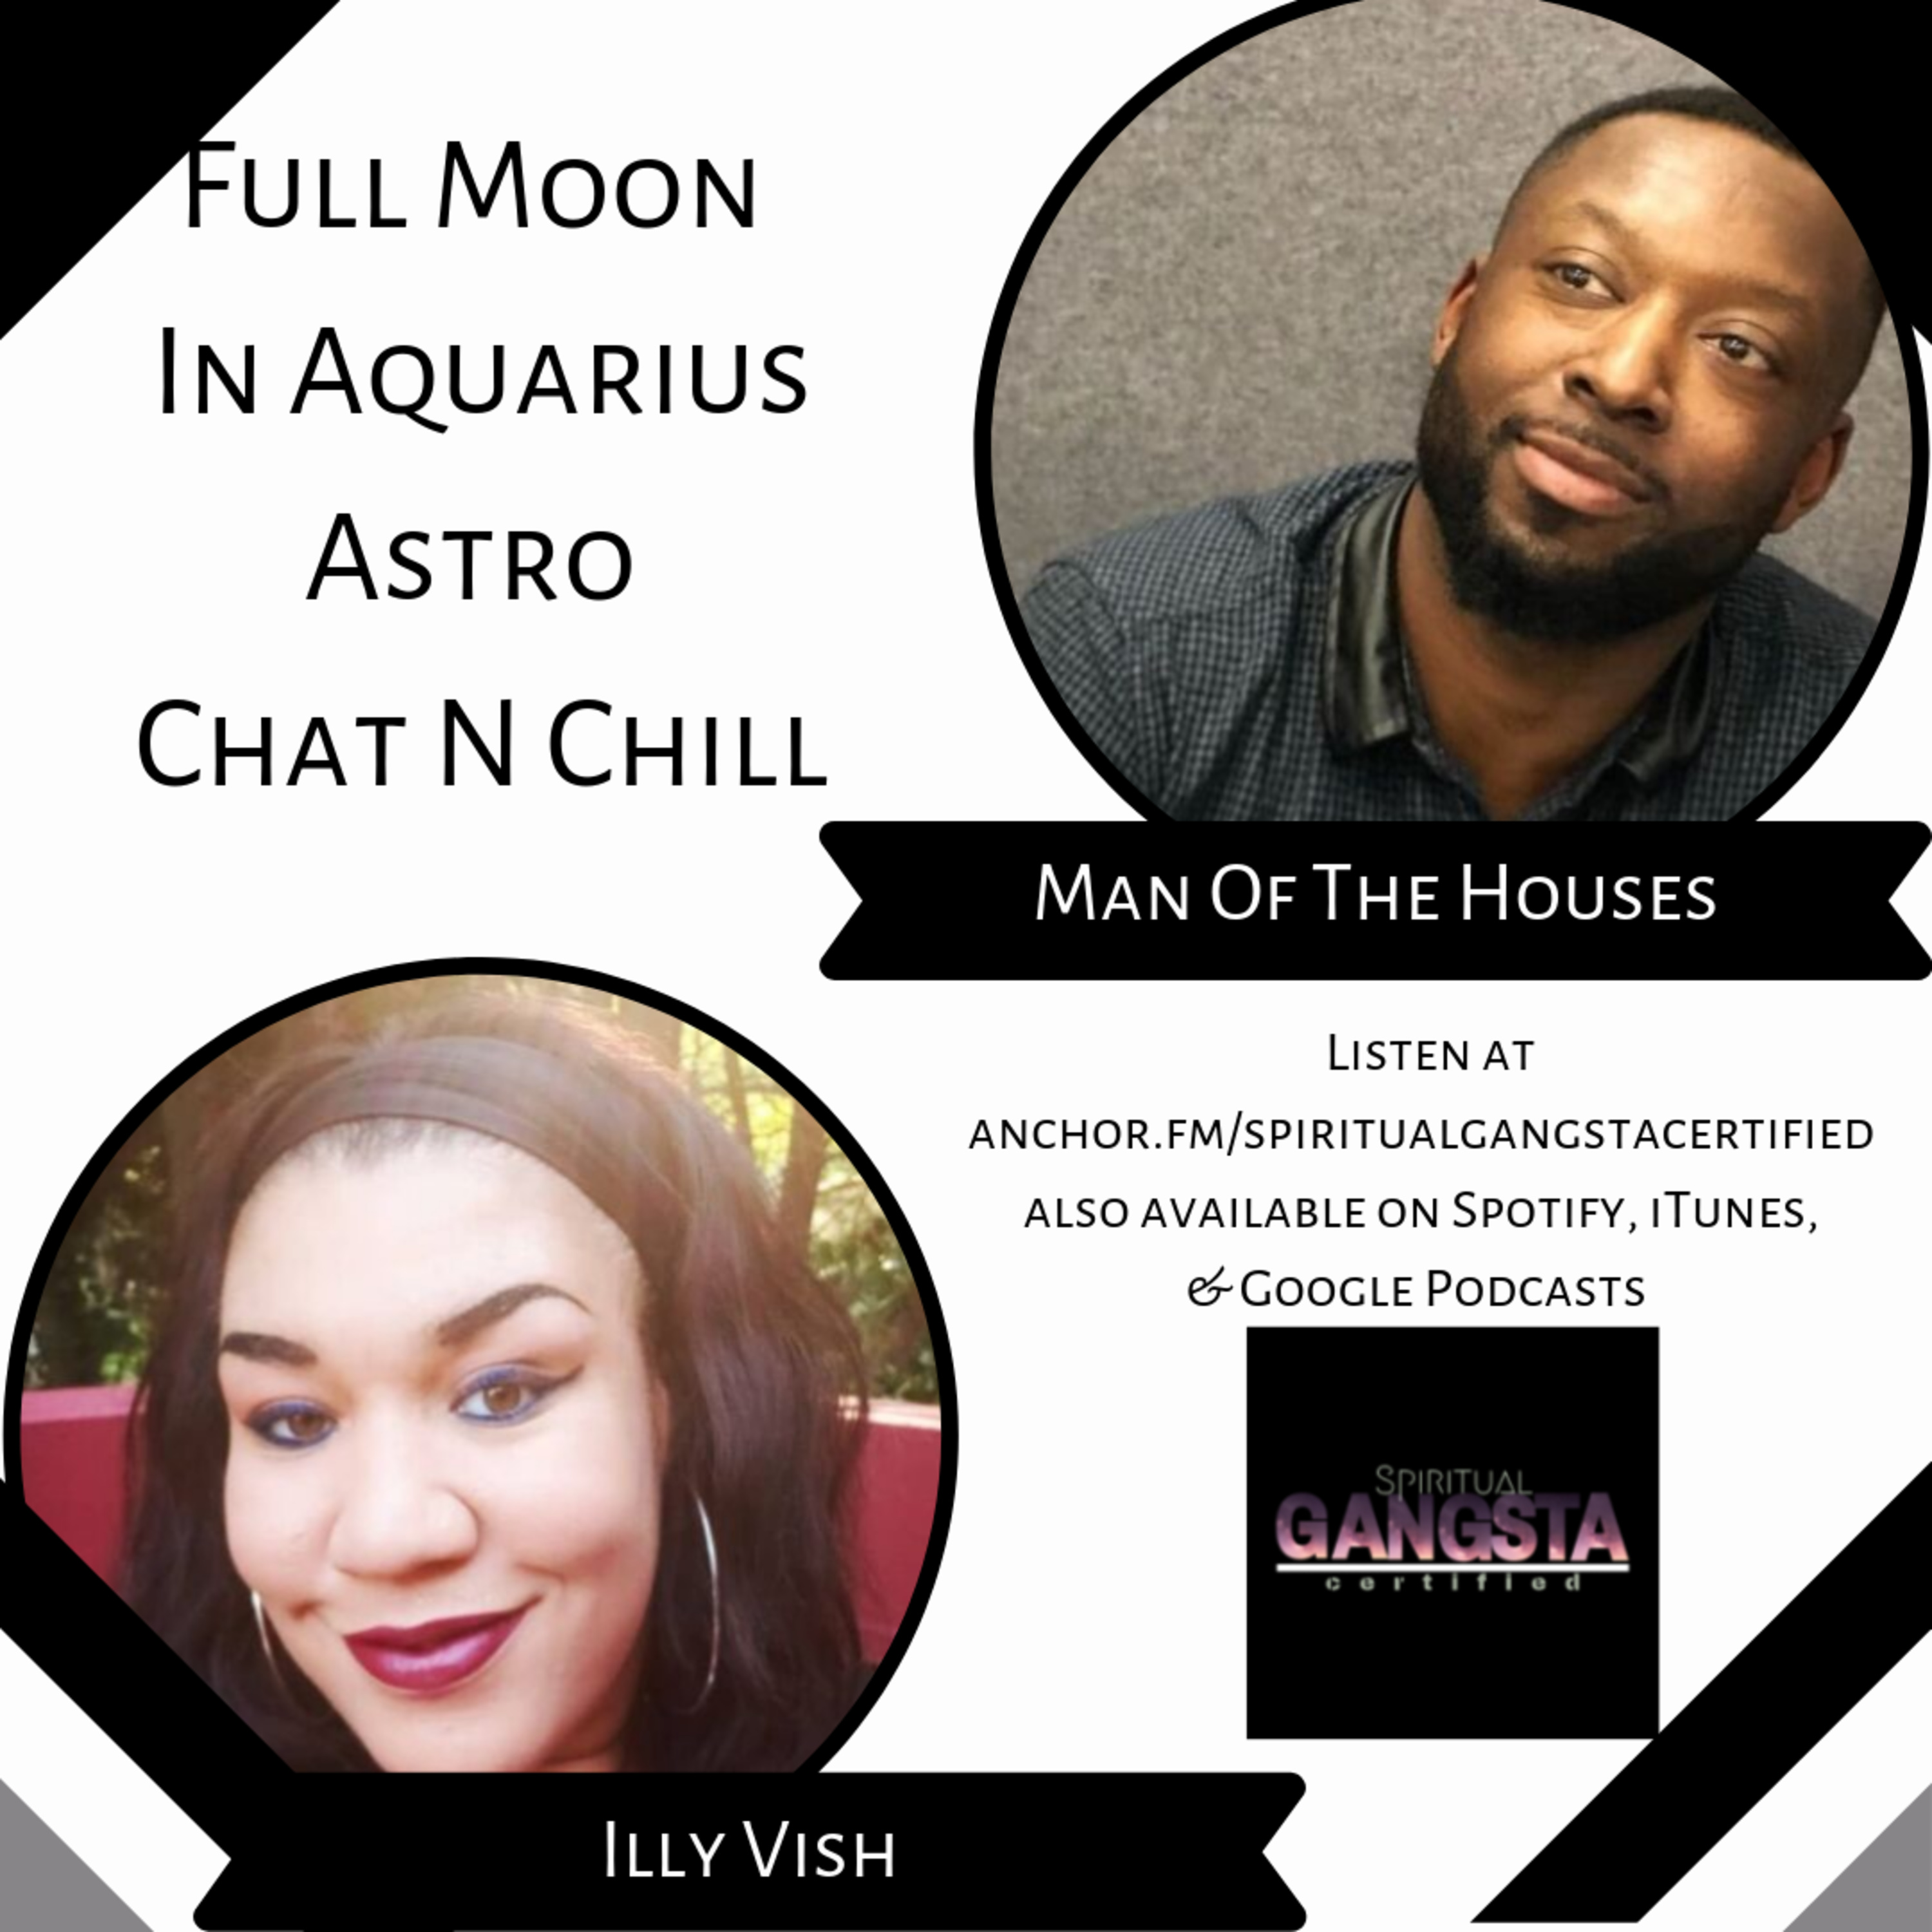 Episode 210.5: Full Moon In Aquarius Chat N Chill with Man Of The Houses